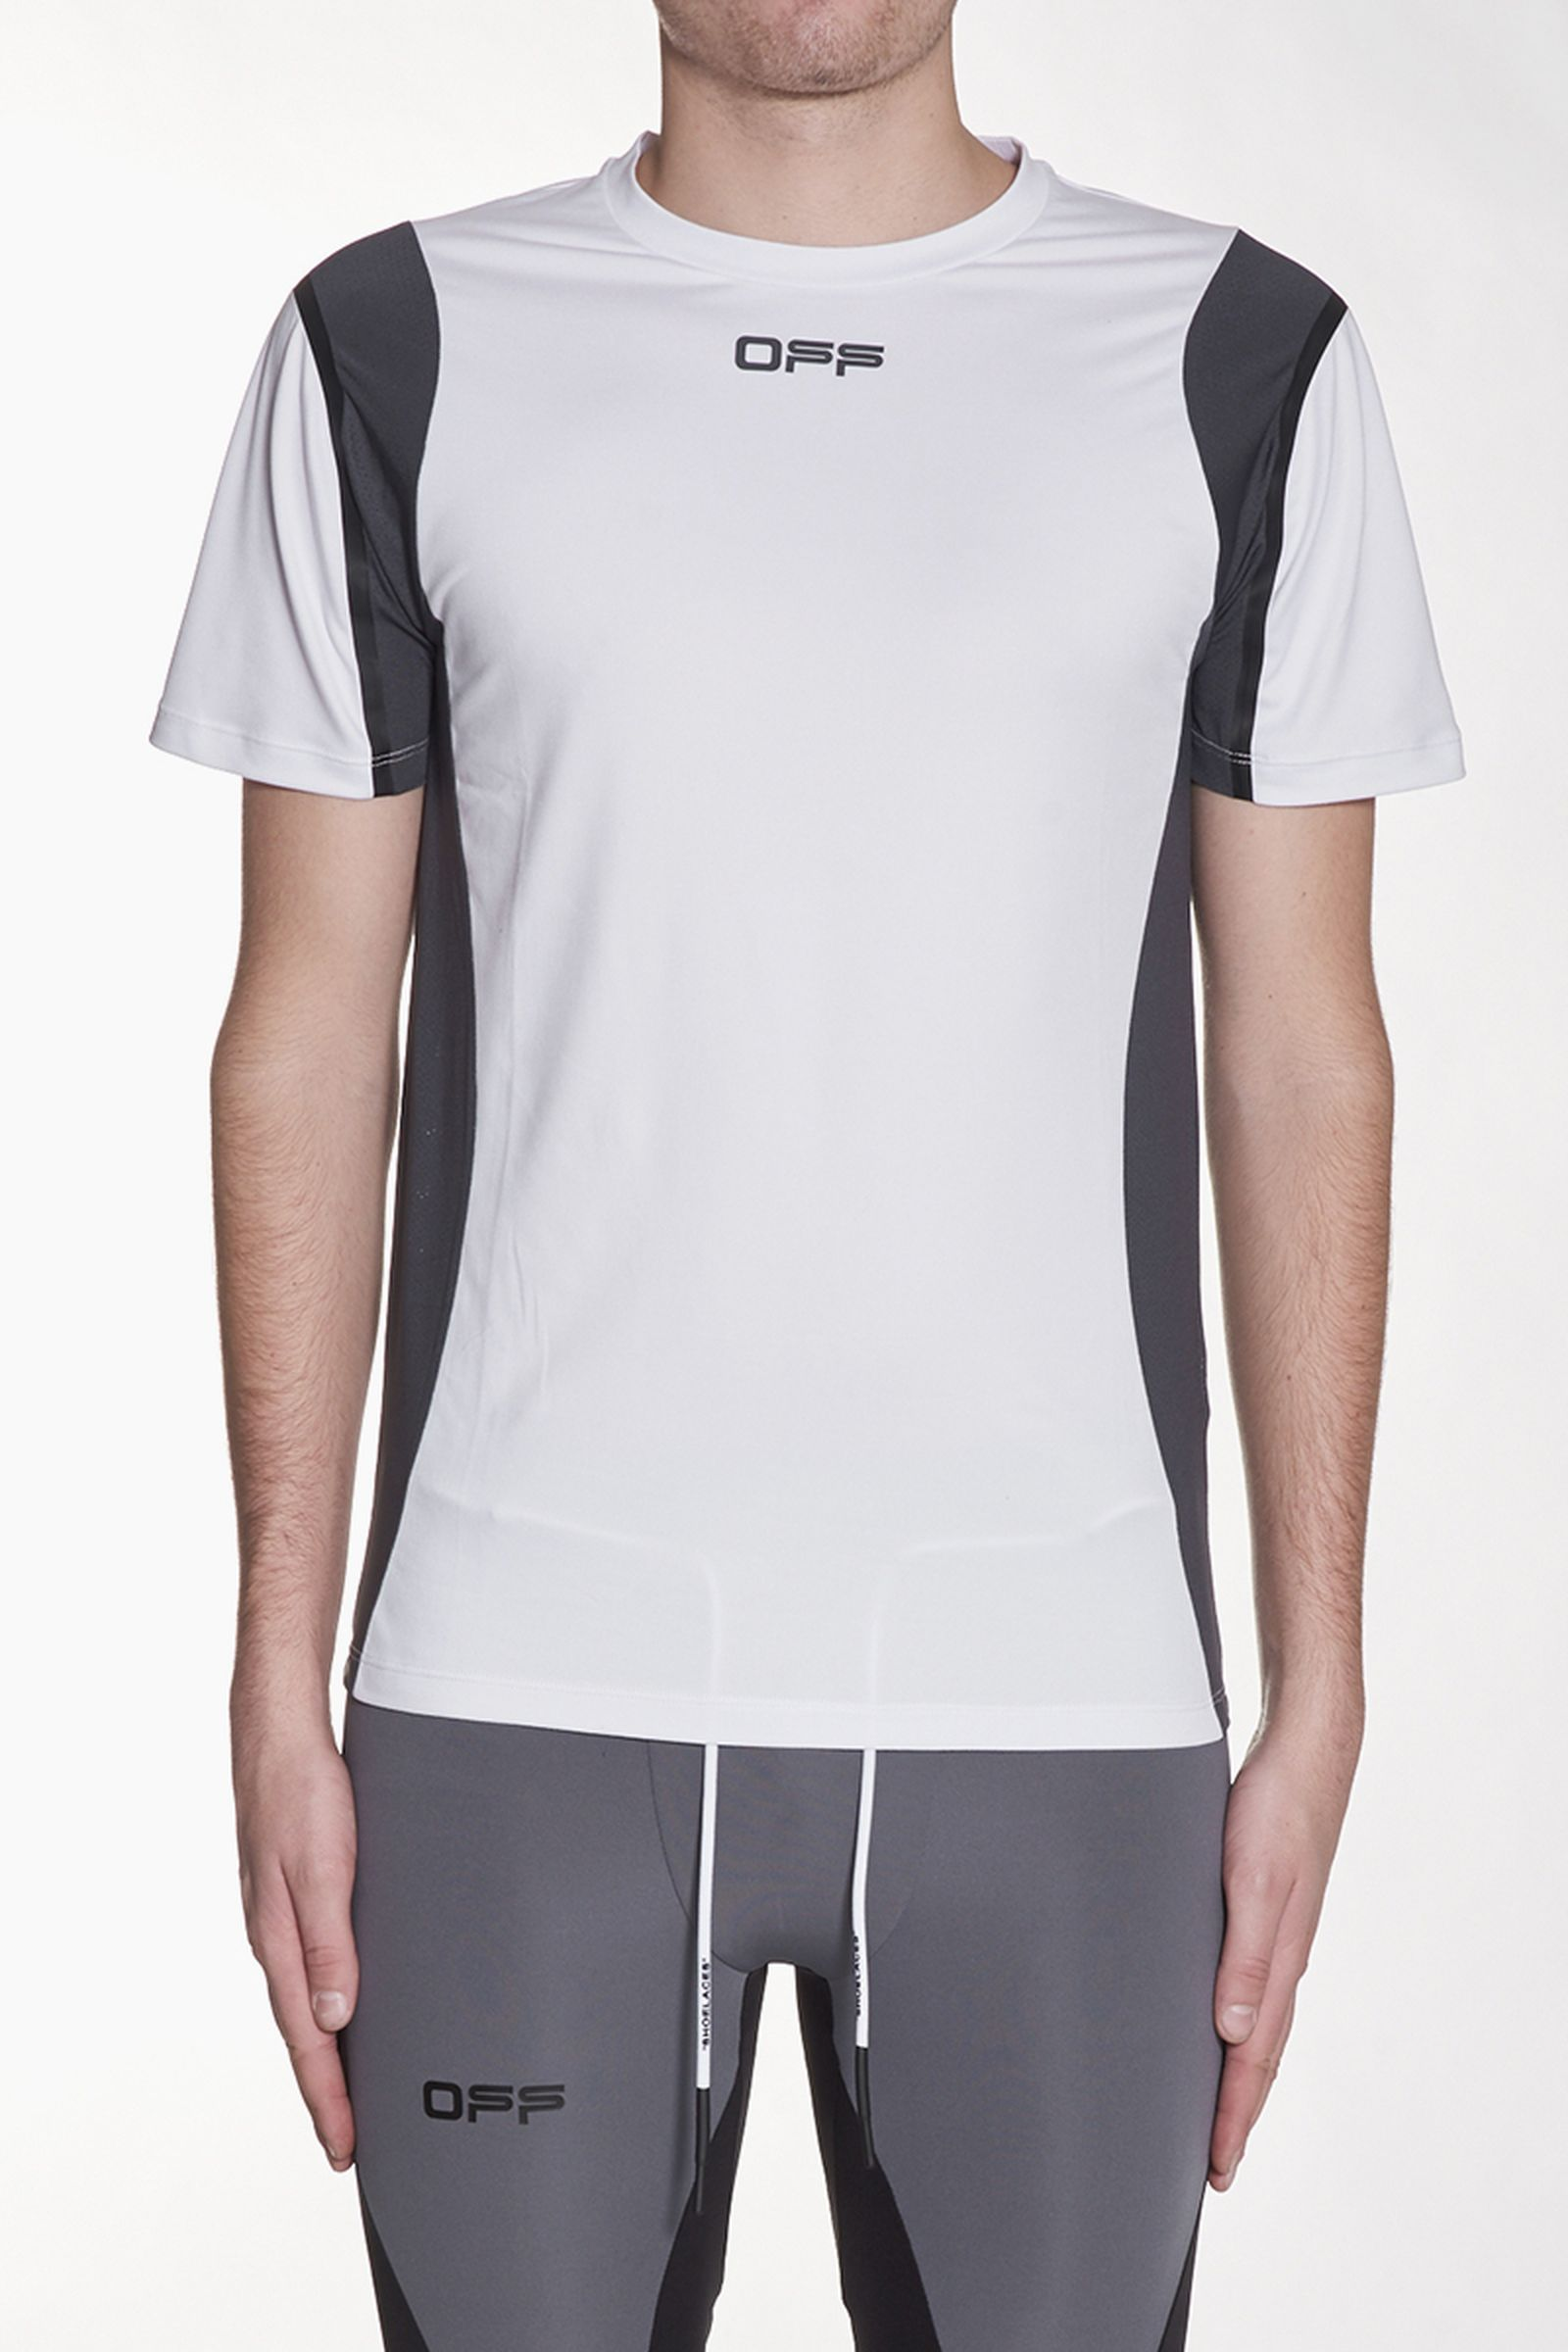 23off-white-activewear-off-active